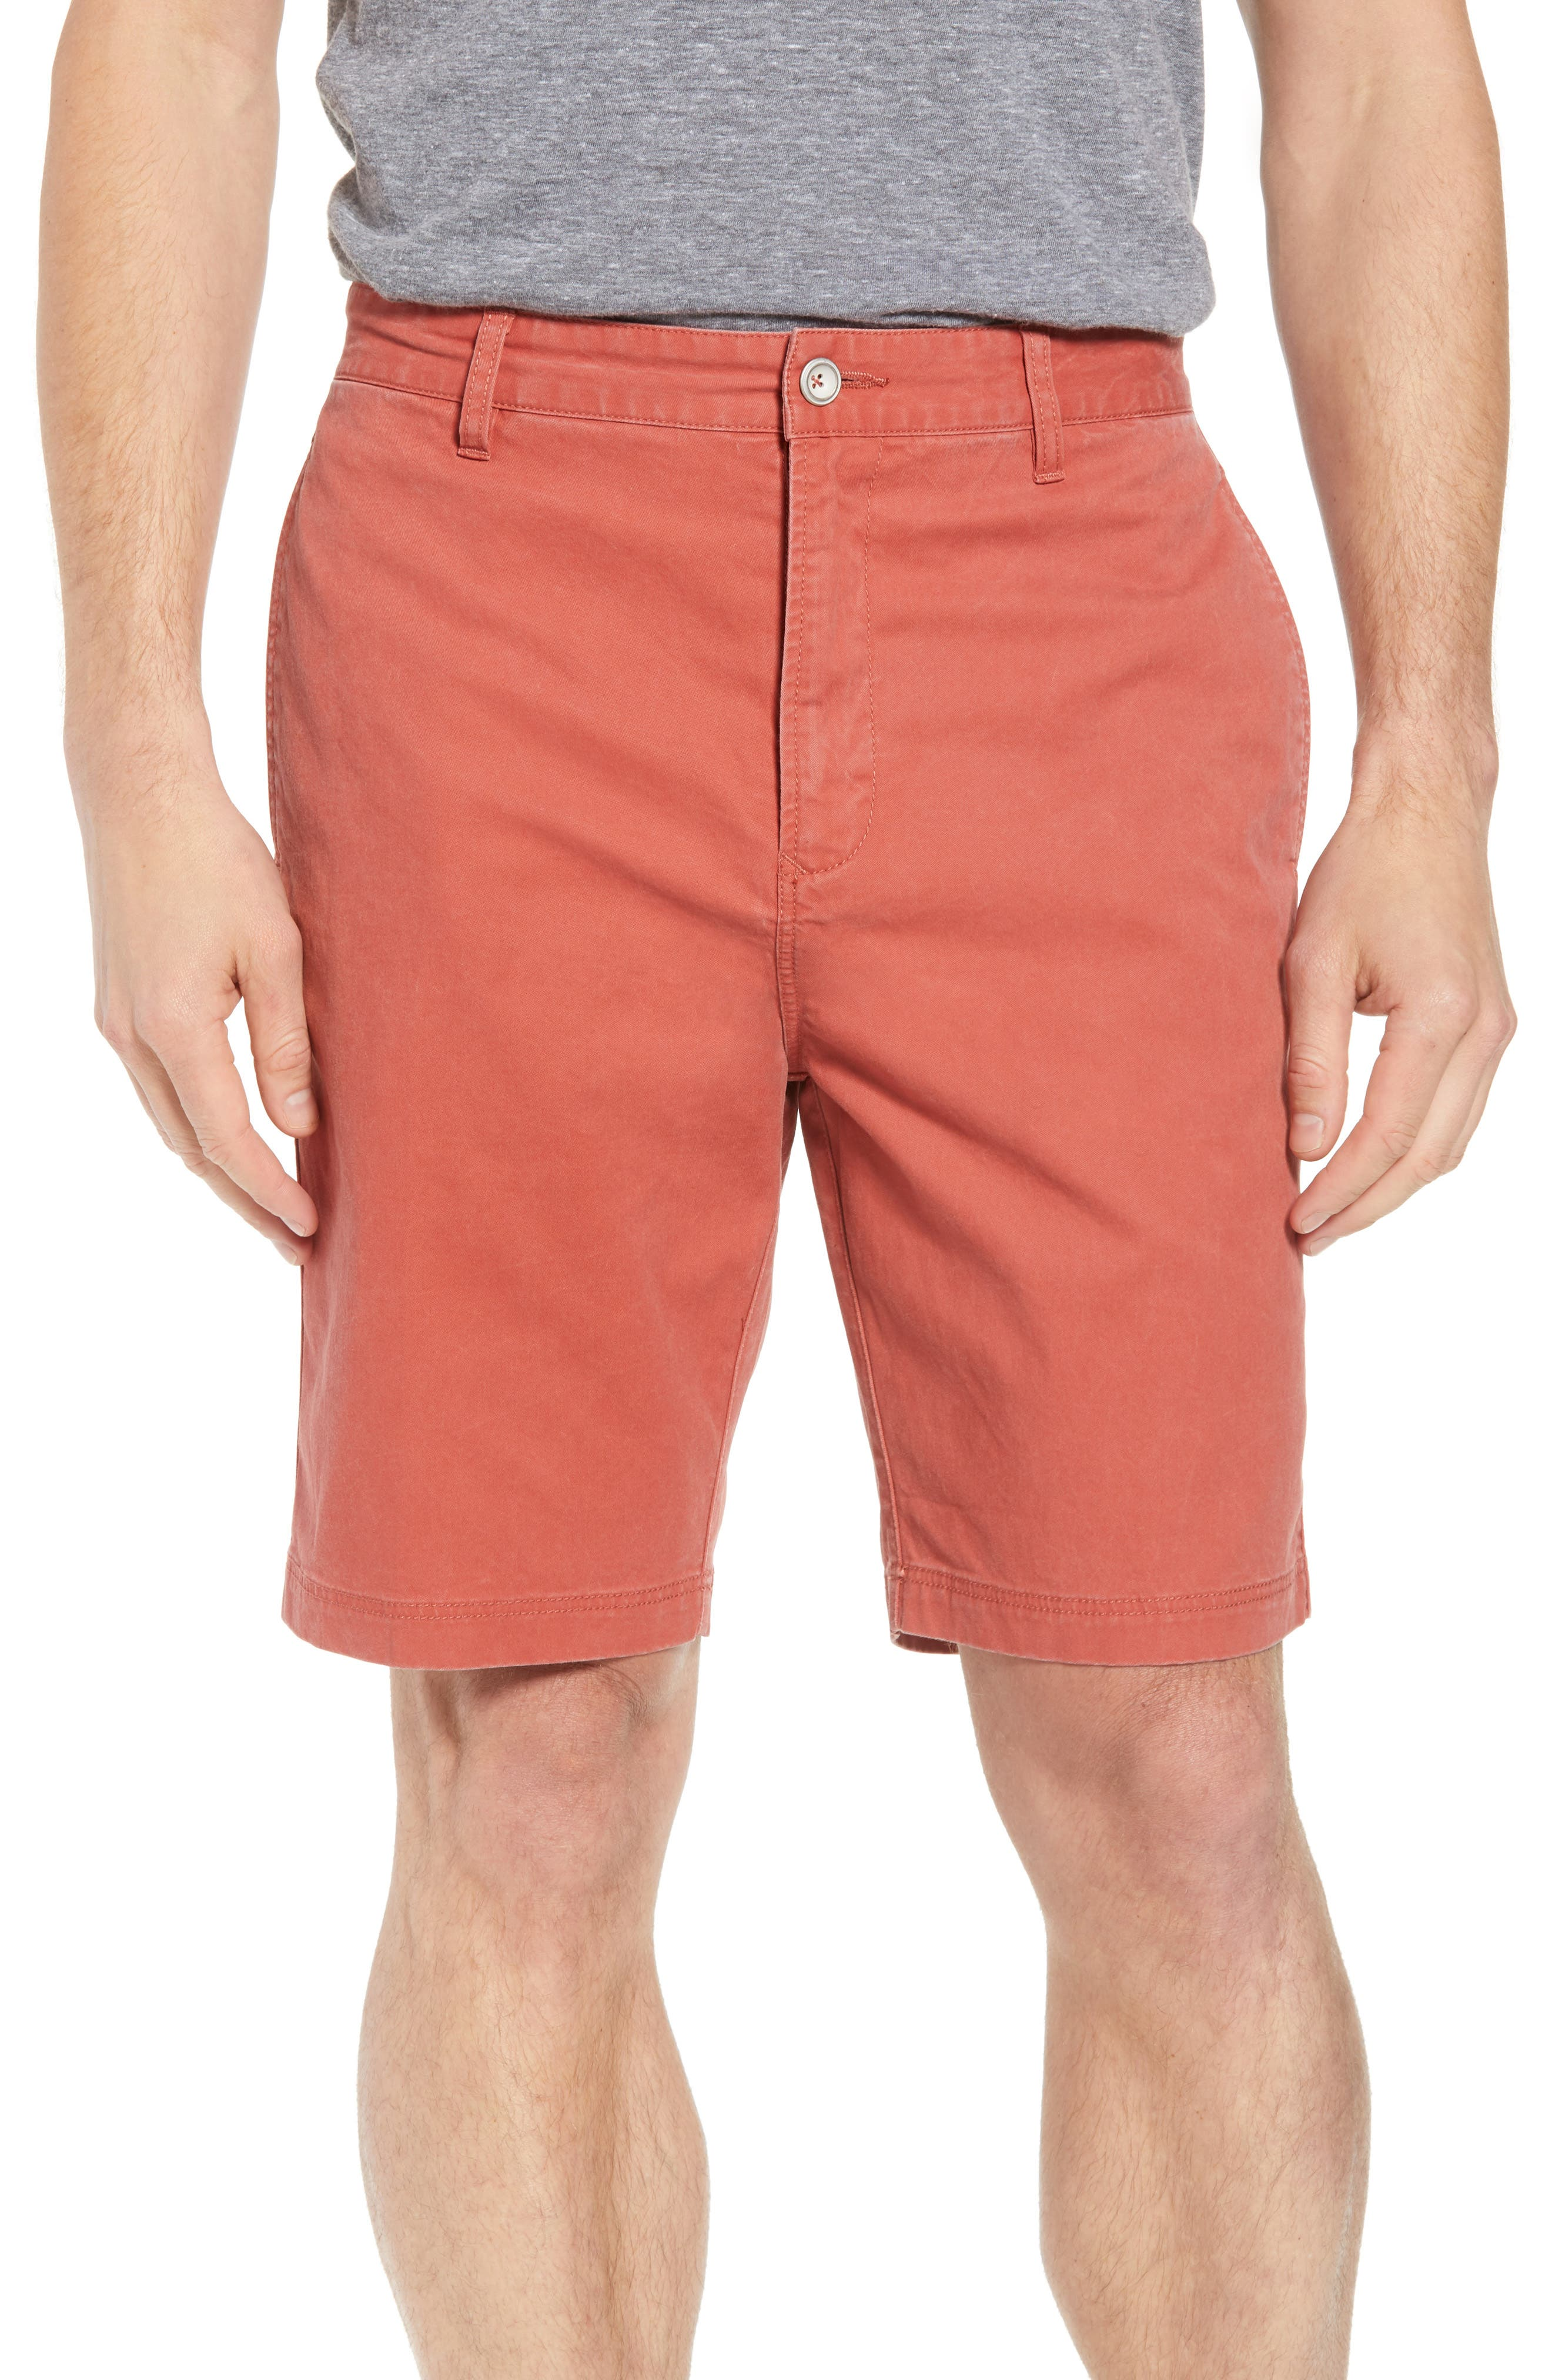 Glenburn Shorts,                         Main,                         color, Red Ochre